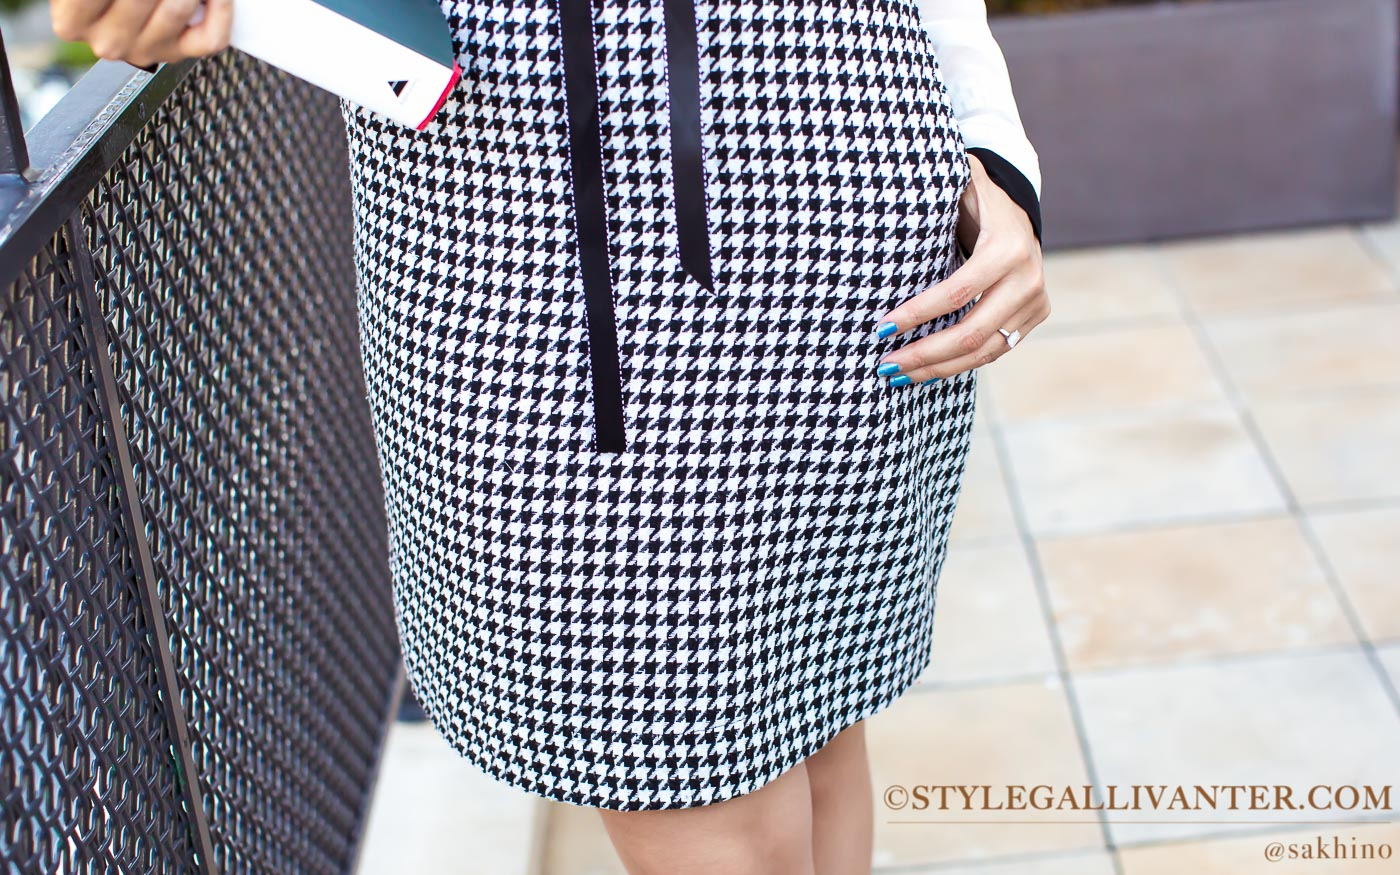 houndstooth-trends-2016_style-gallivanter-2016_top-bloggers-london-2016_liverpool-top-best-fashion-bloggers-2016_top-natural-hair-bloggers-uk-2016_Australian-top-style-bloggers-2016-21